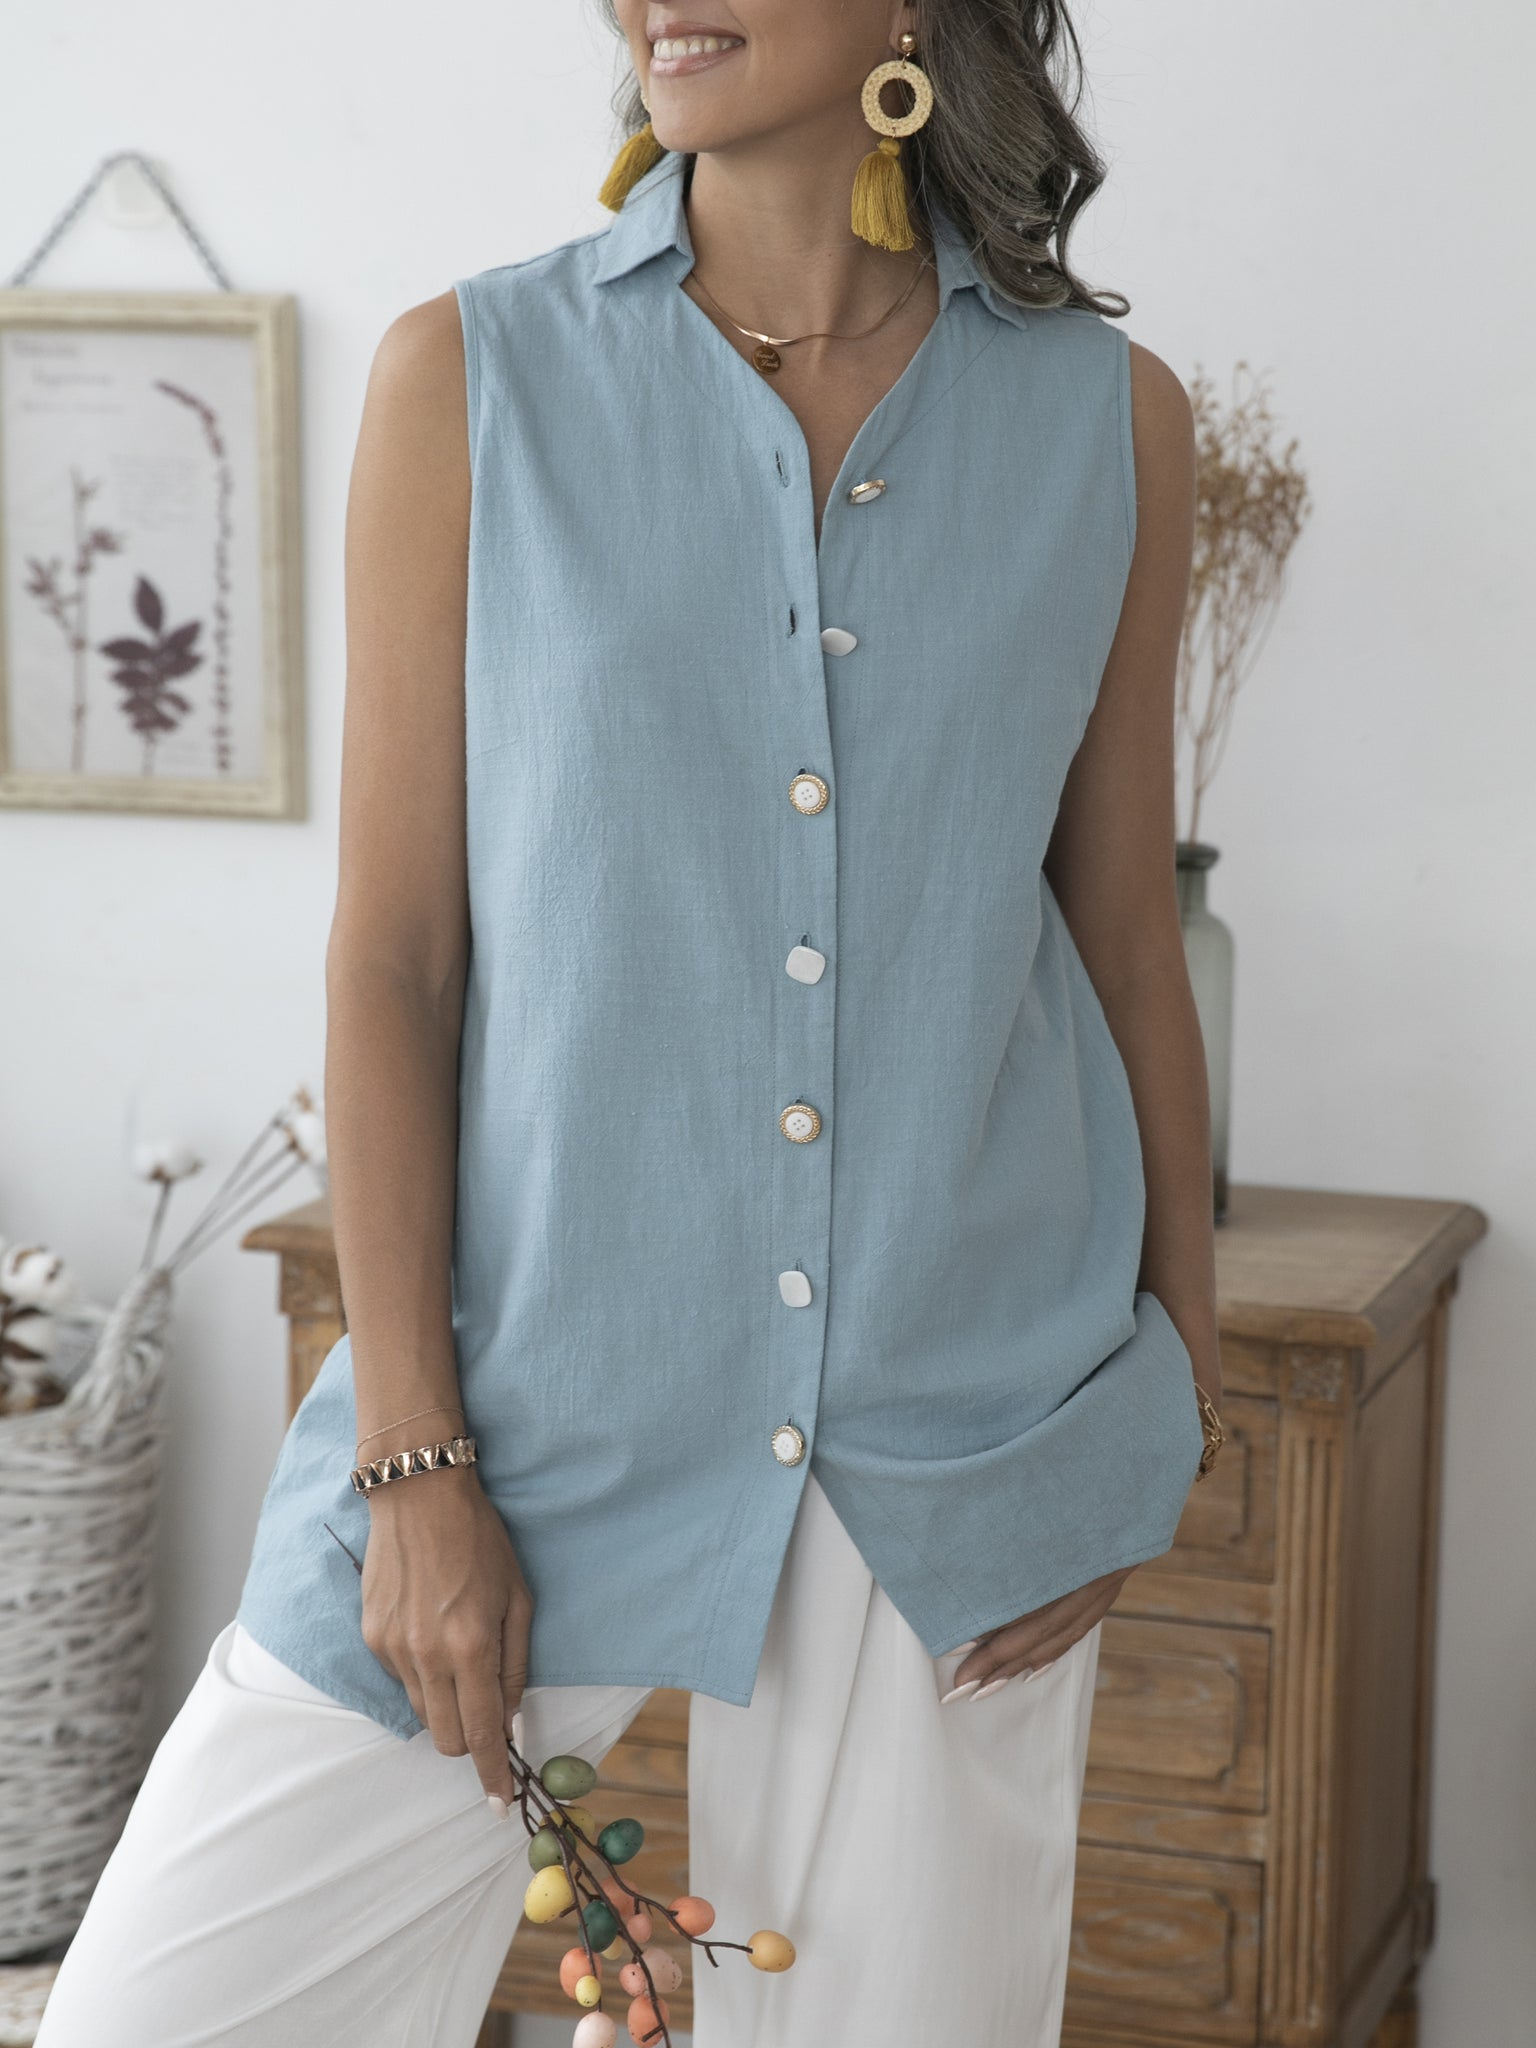 Green Blue Shift Simple Plain Shirts & Tops